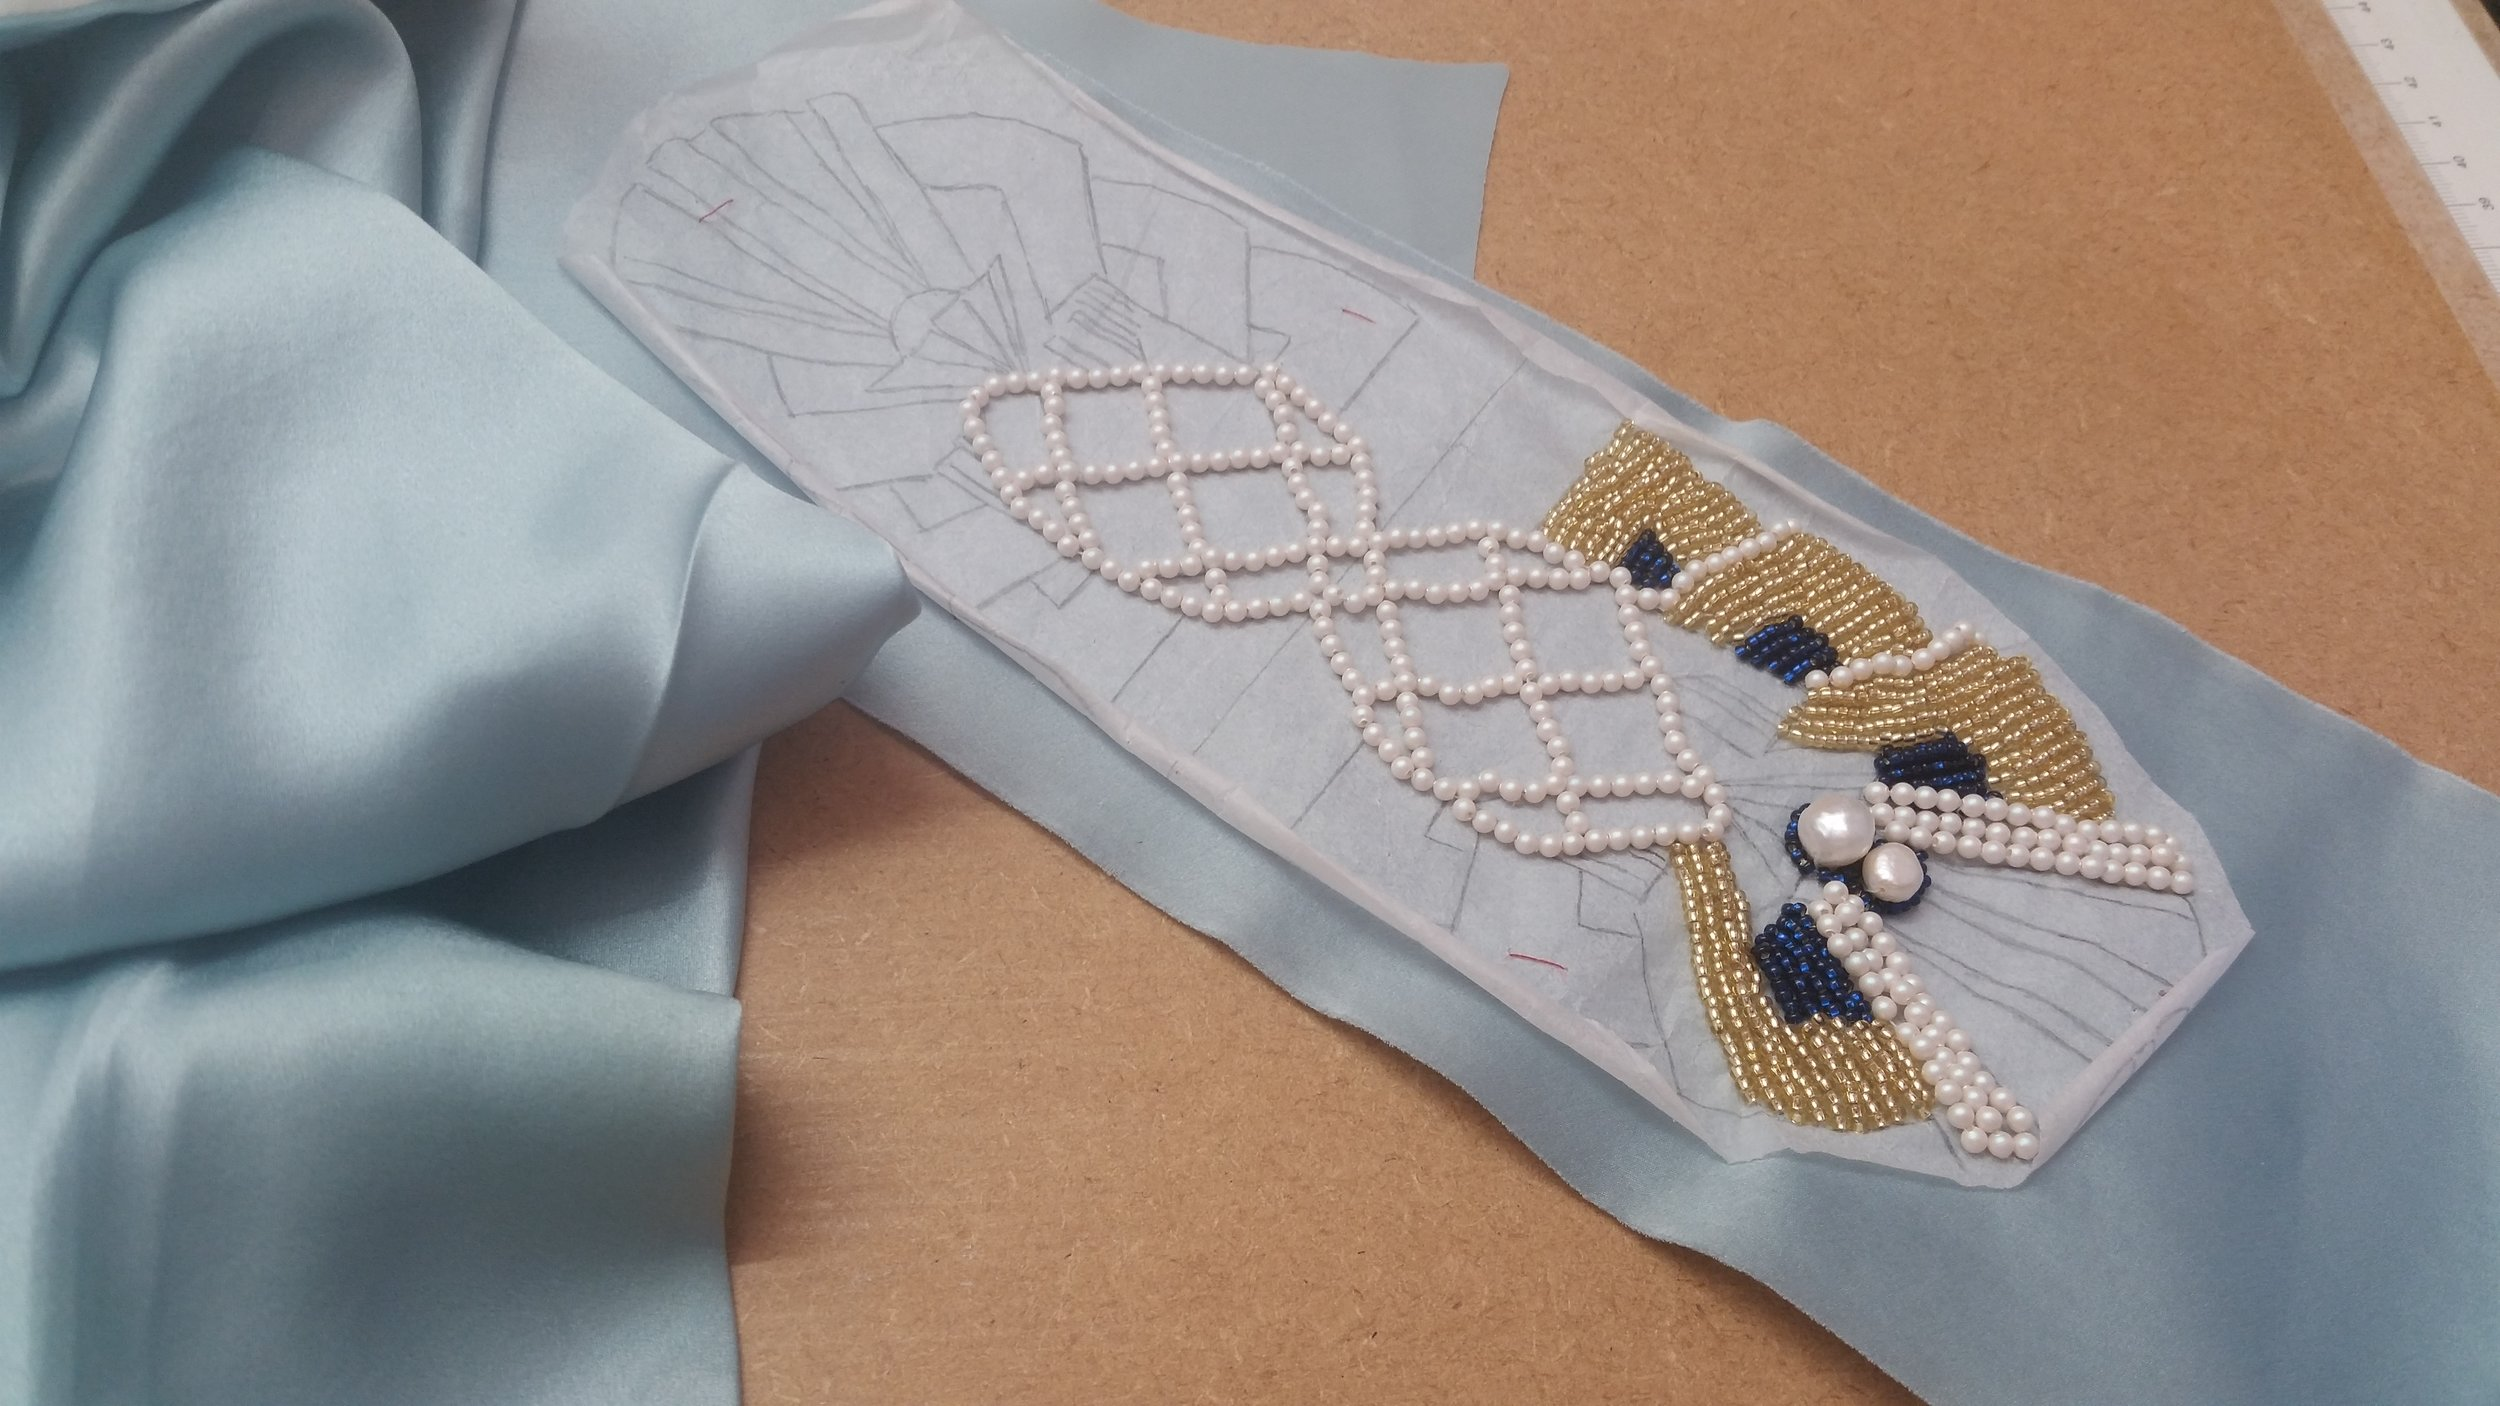 The cummerbund which alone took over 30 hours of hand beading.